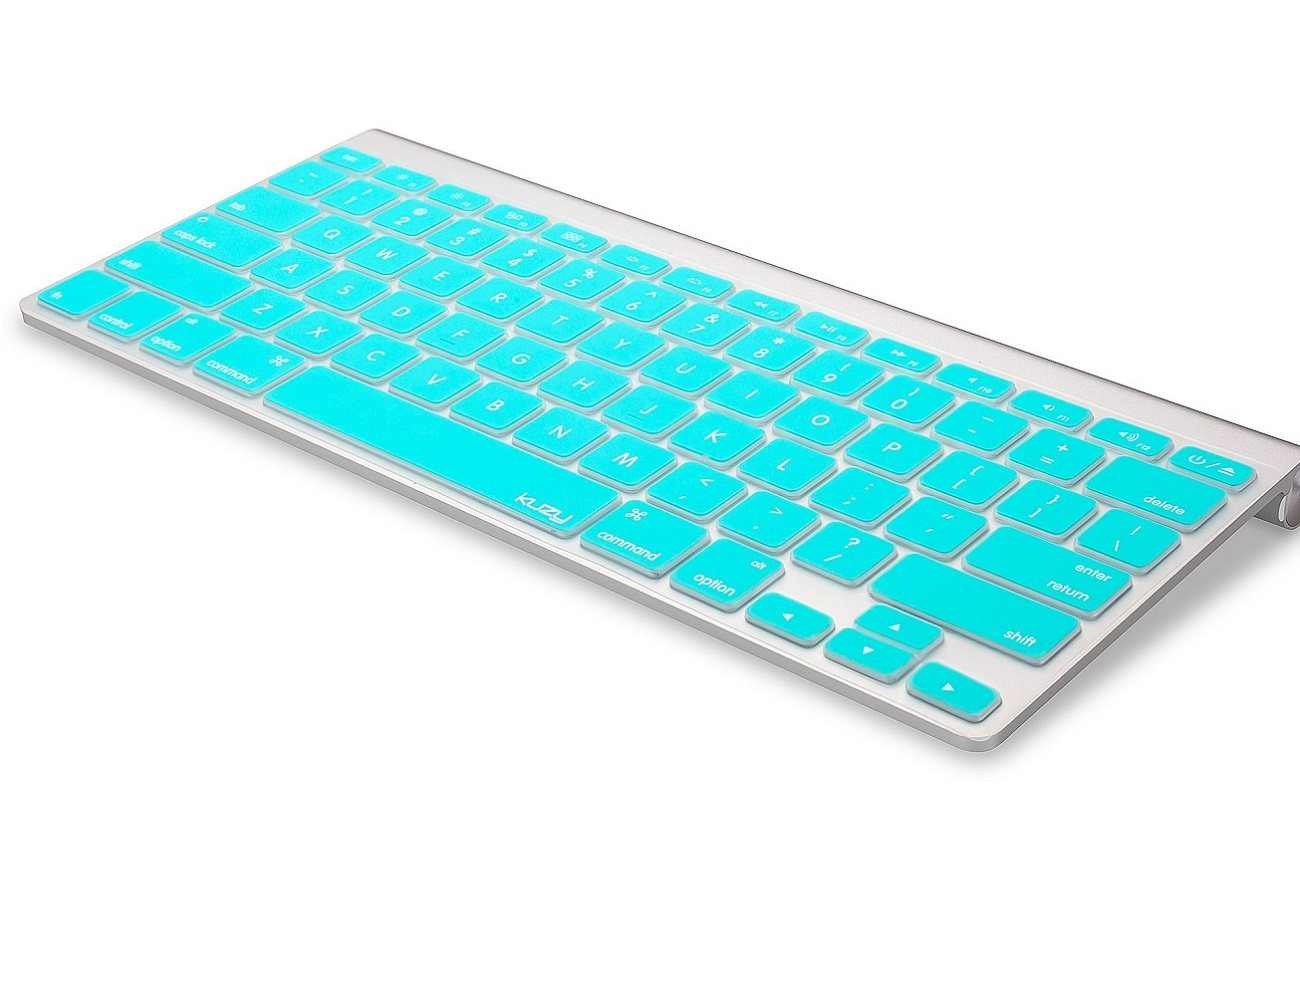 Turquoise Apple Keyboard Cover